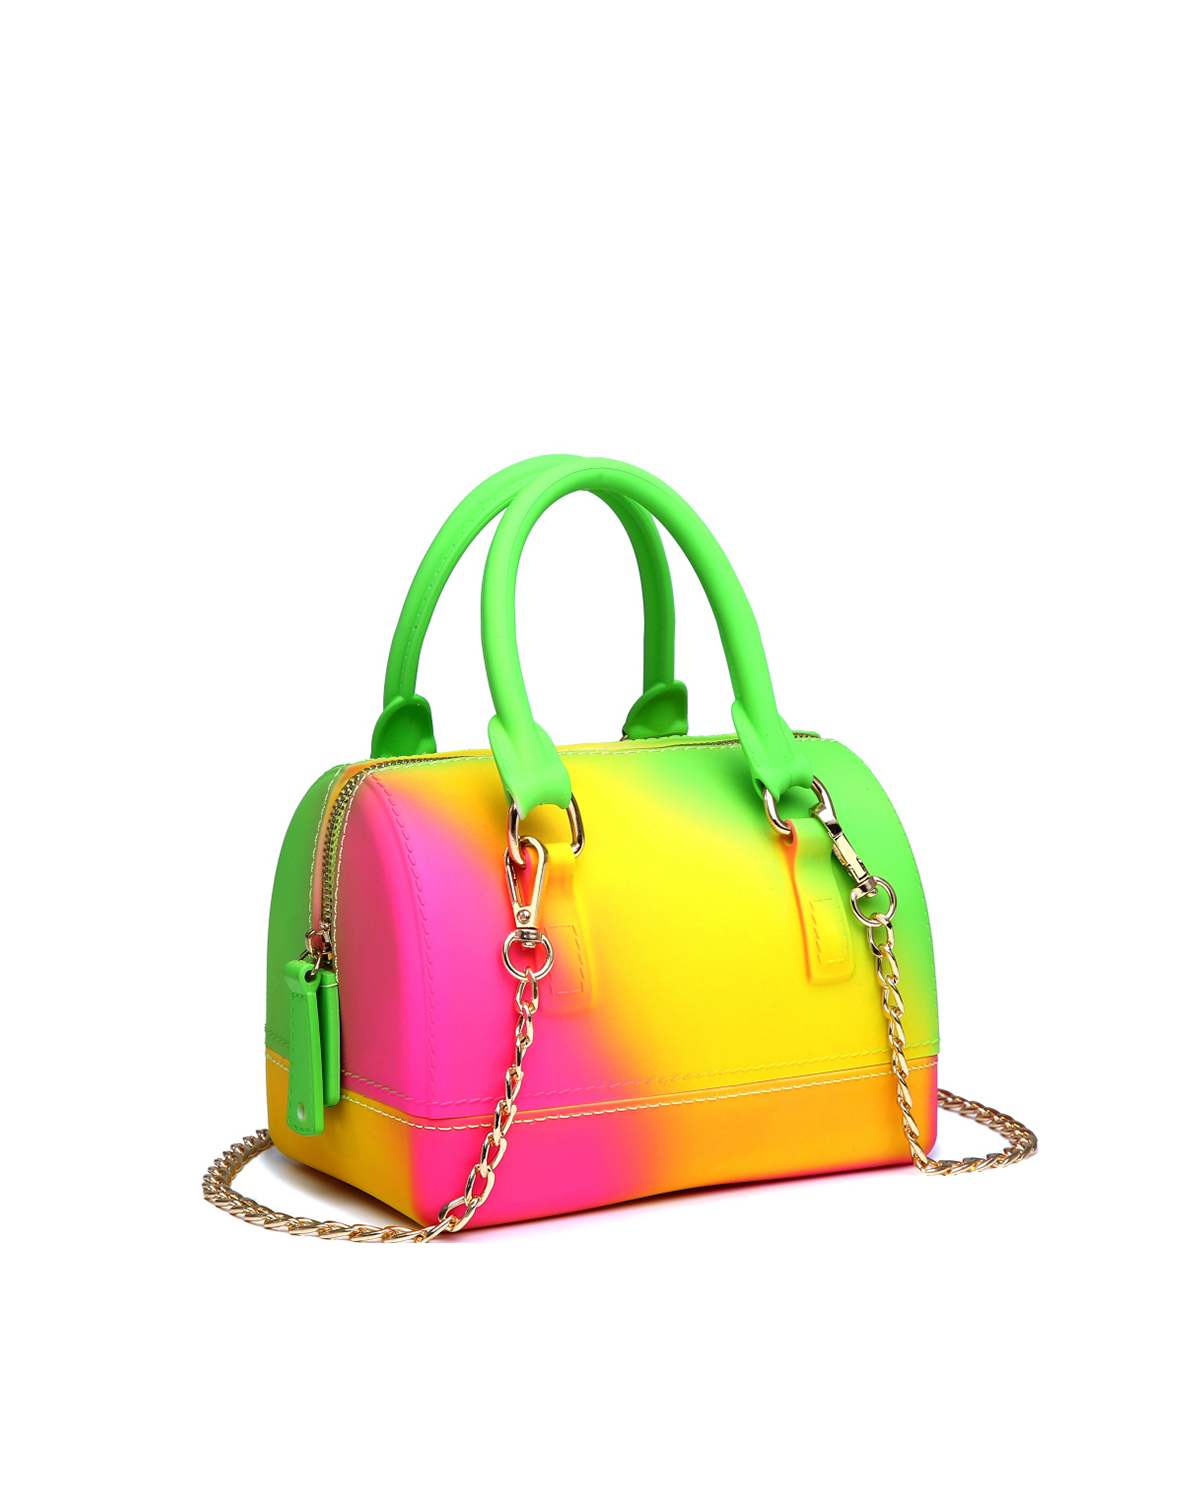 JM9111(MTA)-wholesale-tote-bag-jelly-silicorn-solid-color-flap-chevron-gold-chain-convertible-embossed(0).jpg